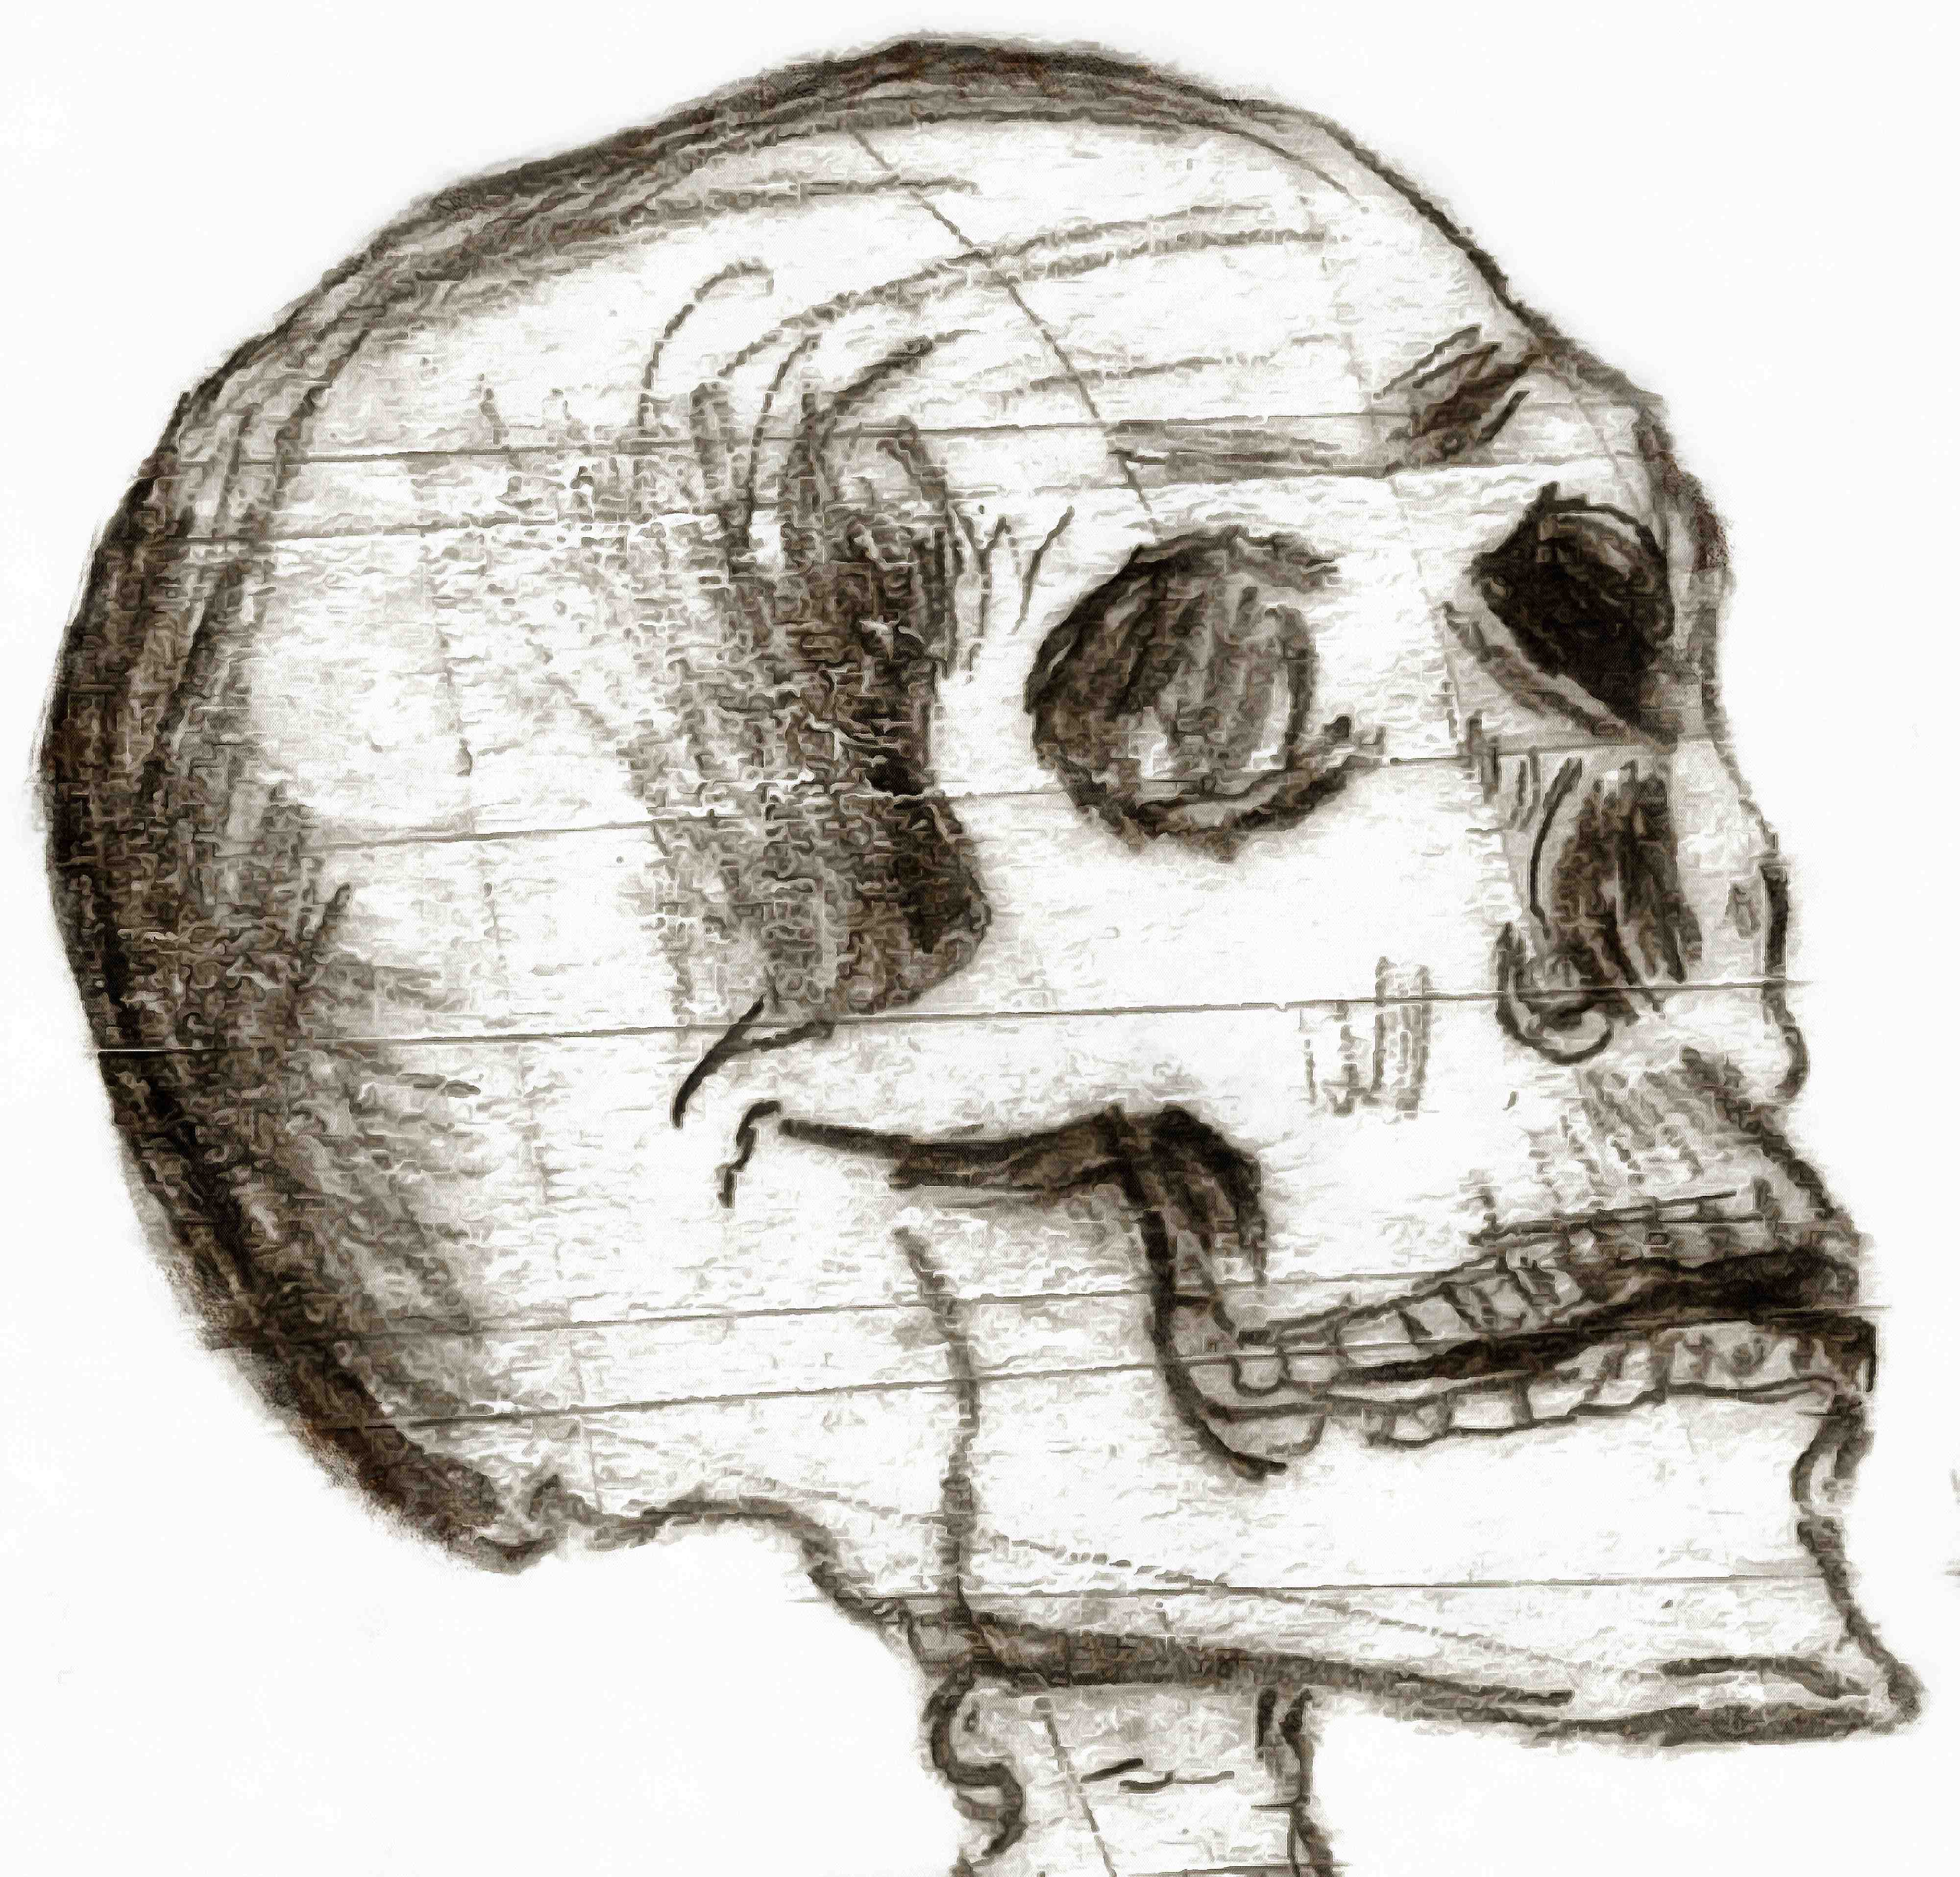 skull, head, bones, horror, skeleton, fear, smile, halloween - halloween free image, free images, public domain images, stock free images, download image for free, halloween stock free images